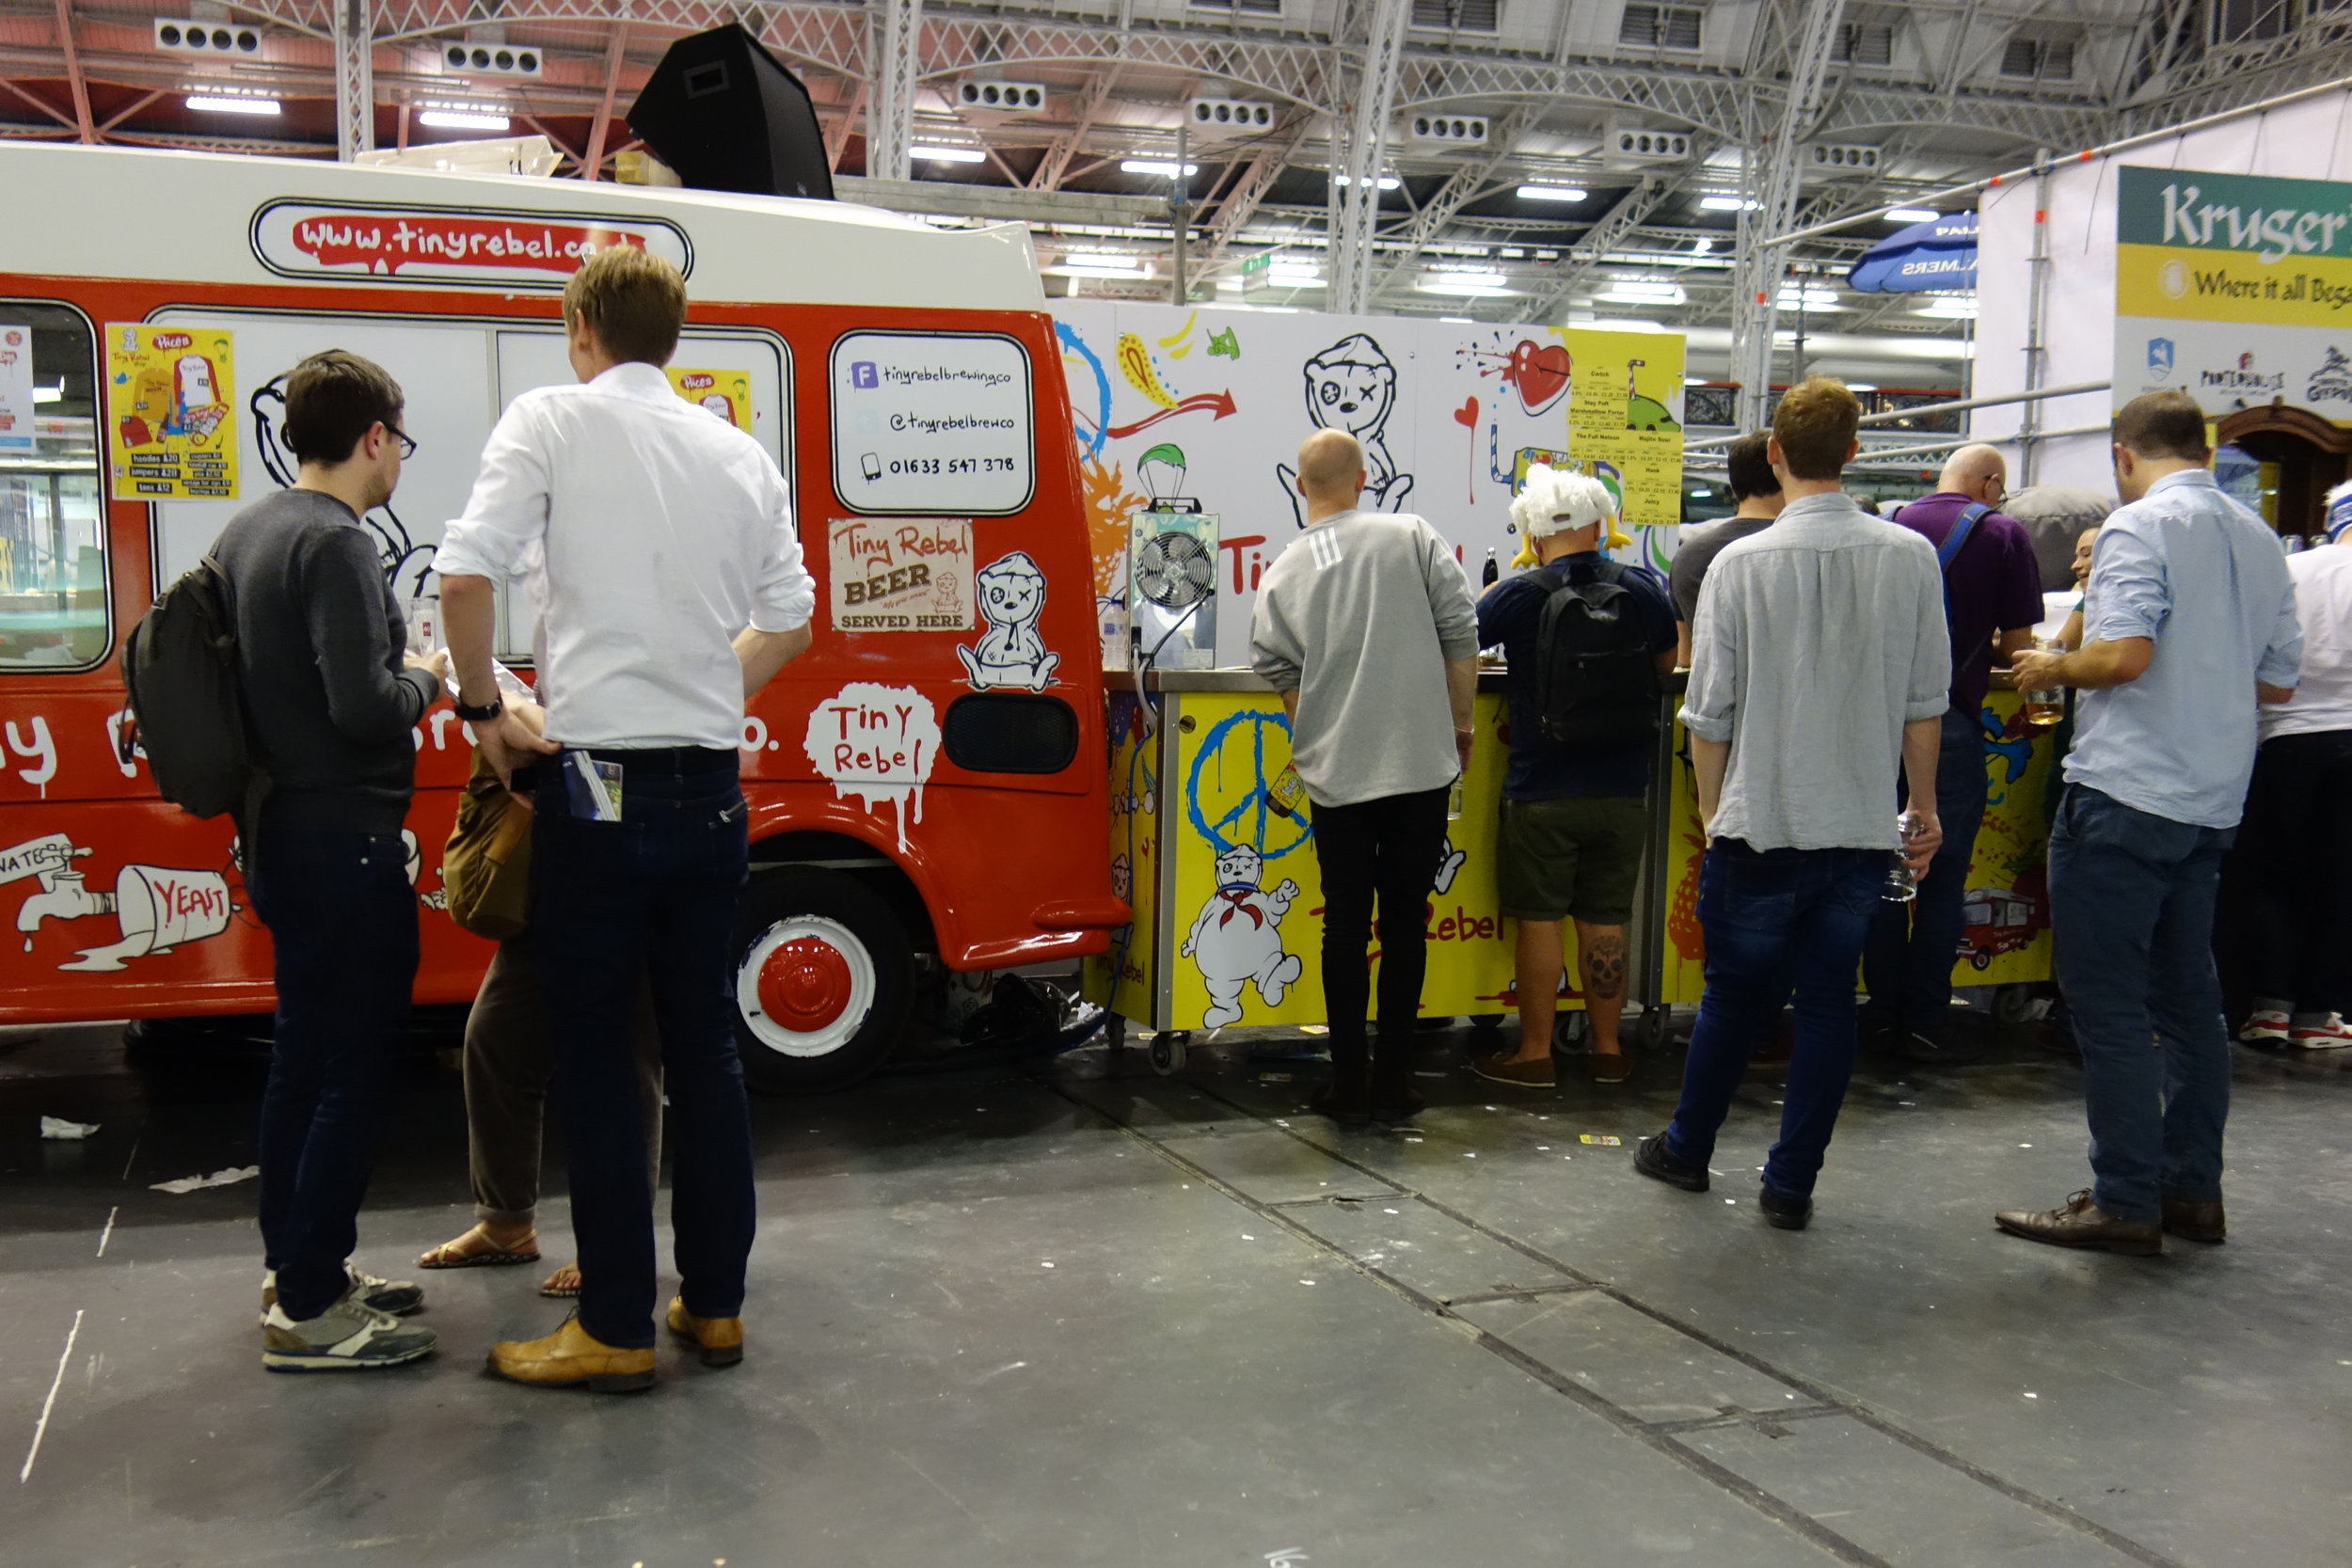 Tiny Rebel being bold at the Great British Beer Festival.